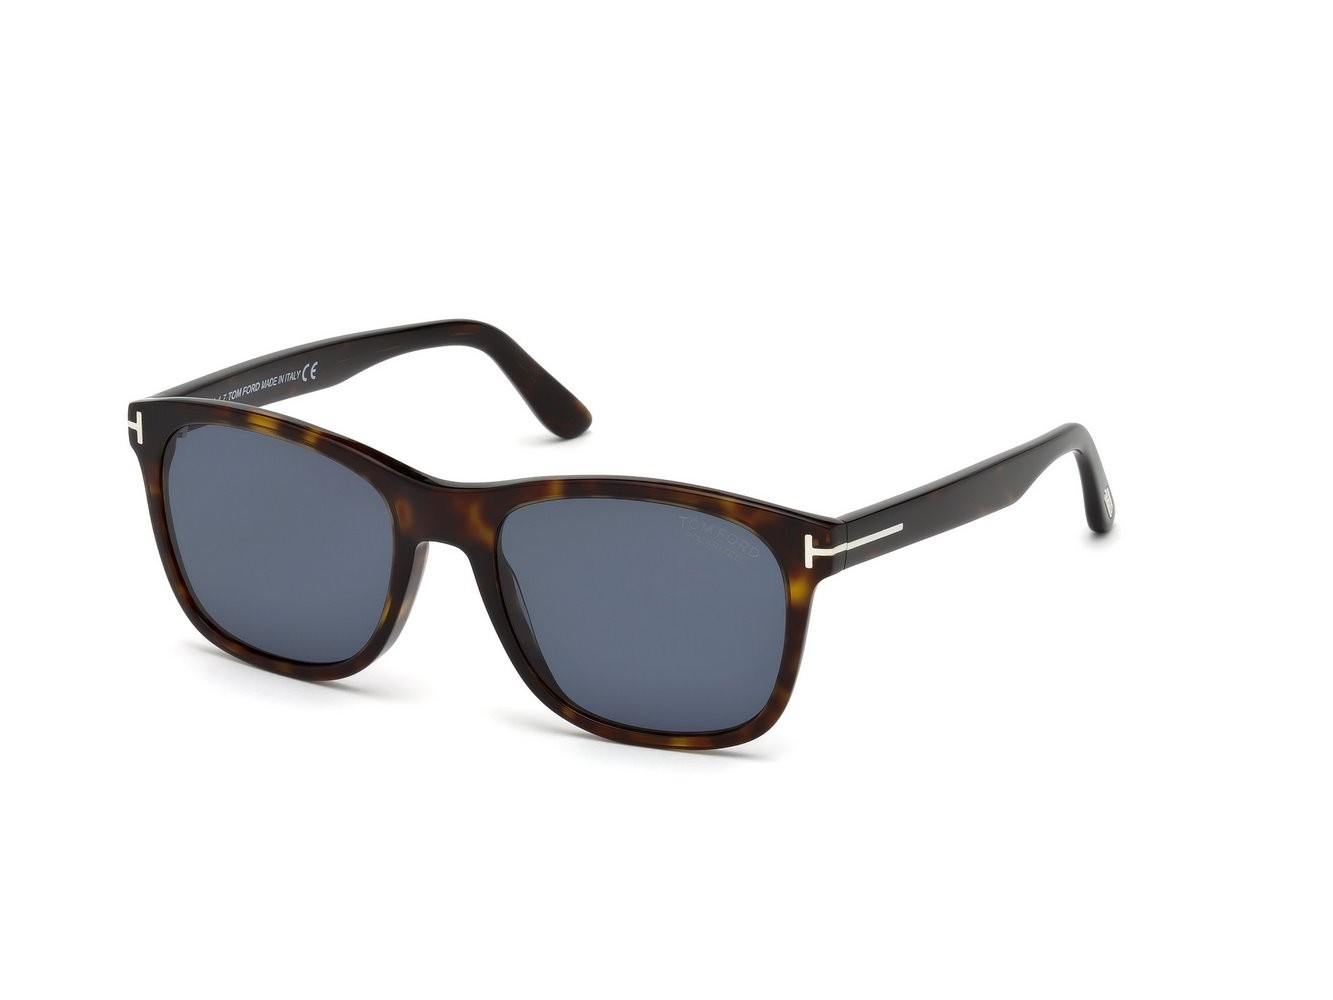 Tom Ford FT0595 52D 55 mm/19 mm K7ZztF9n2